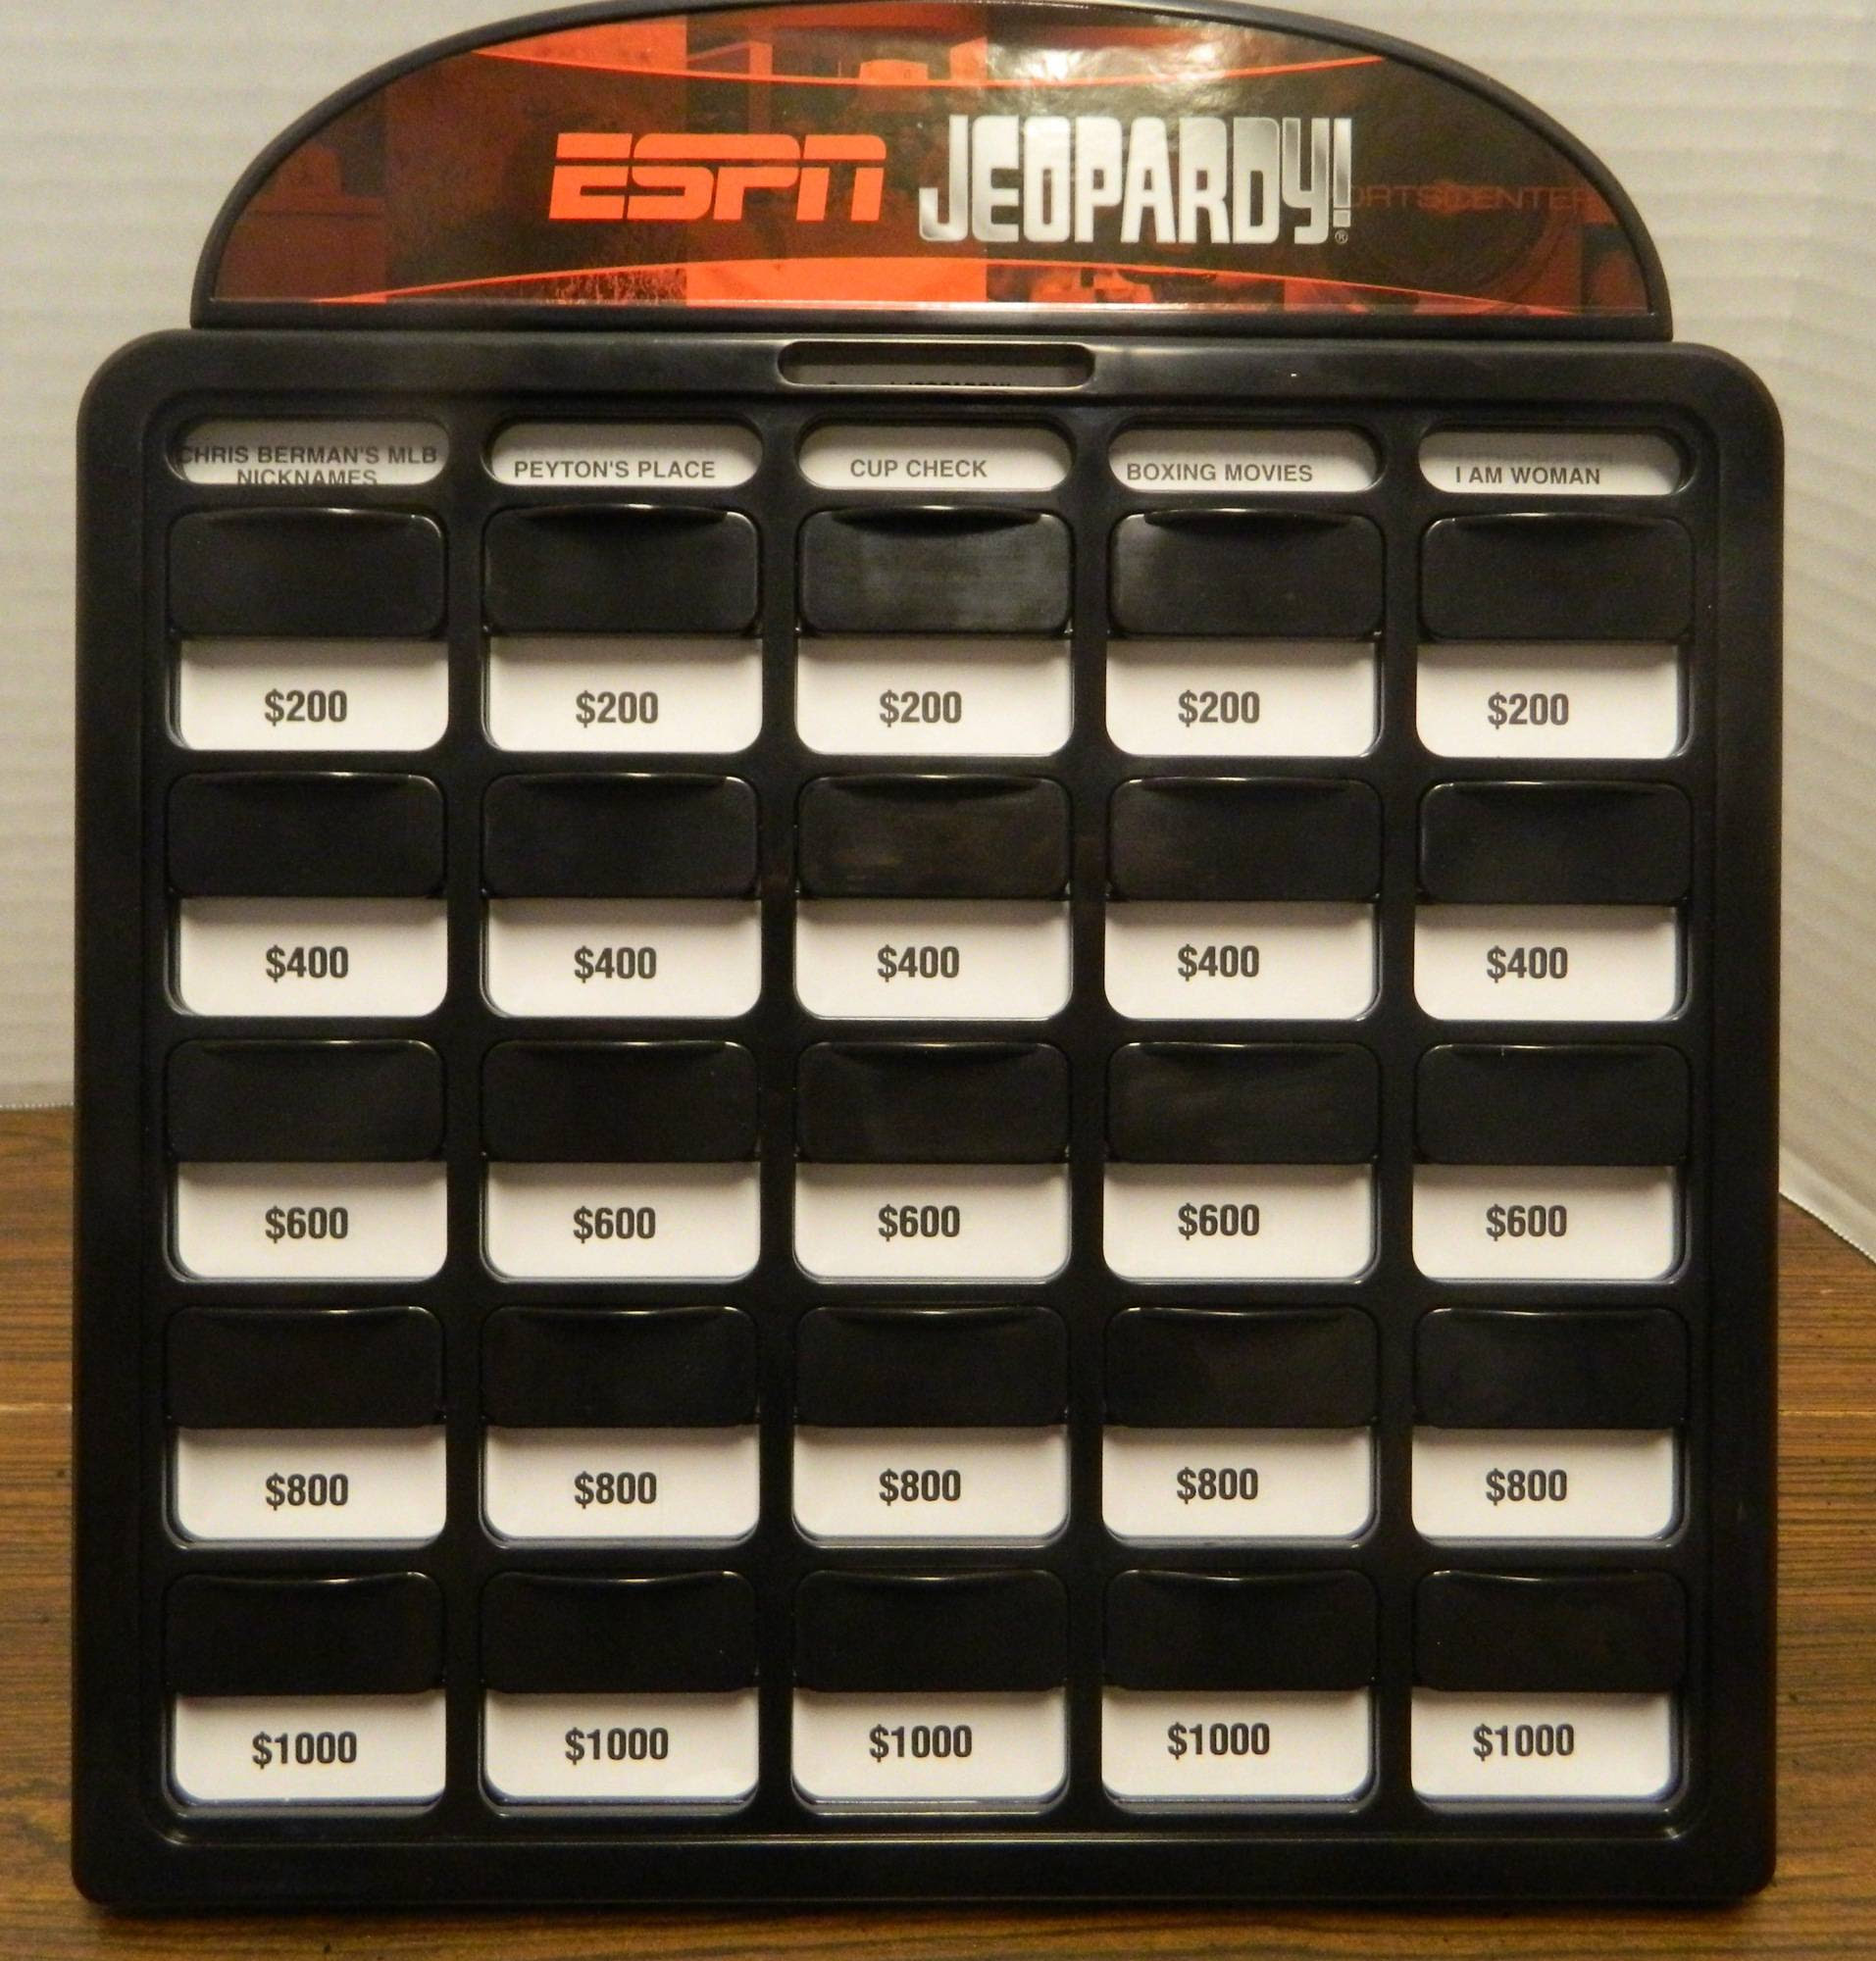 Espn Jeopardy Board Game Review And Rules Geeky Hobbies